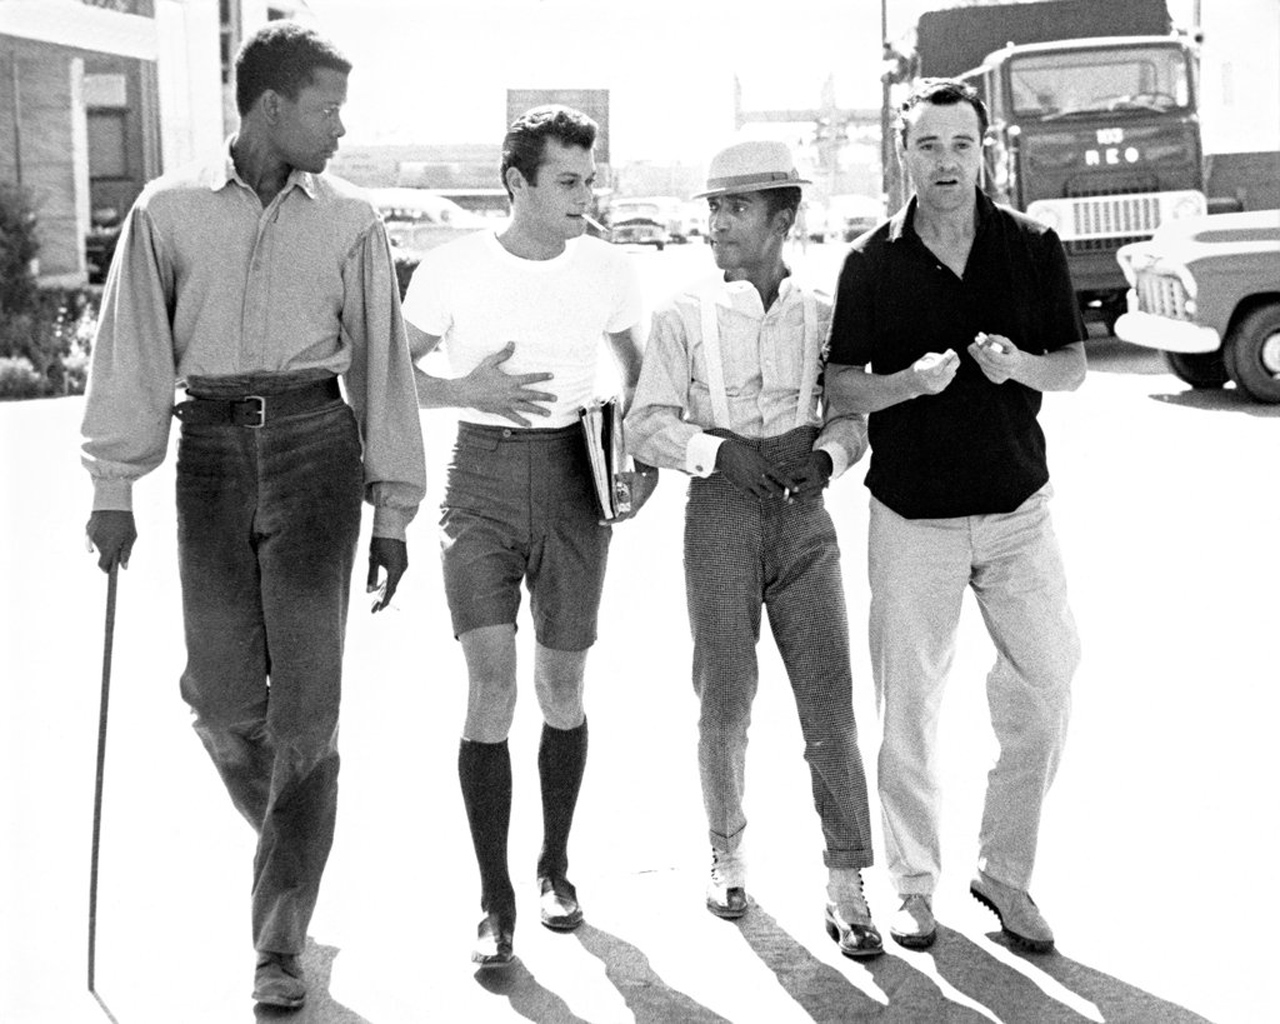 Harry Belafonte, Tony Curtis, Sammy Davis Jr., and Jack Lemmon, by Phil Stern